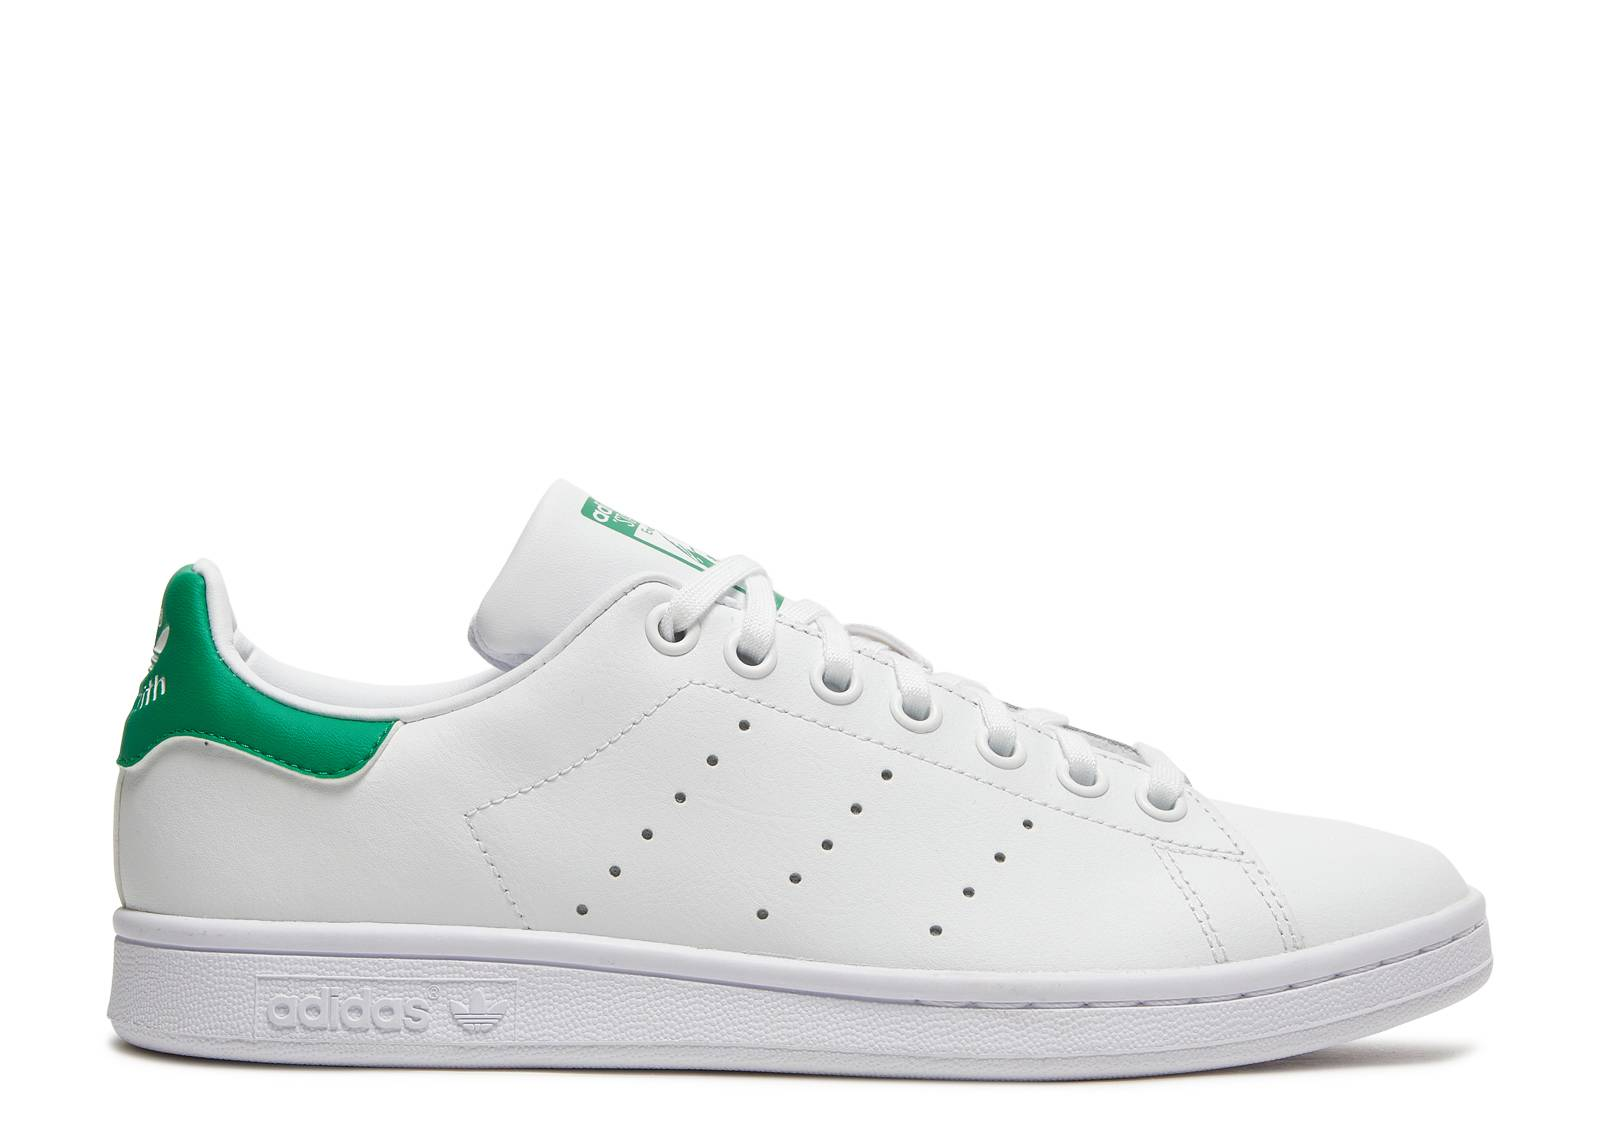 stan smith j gs ftwwht ftwwht green flight club. Black Bedroom Furniture Sets. Home Design Ideas